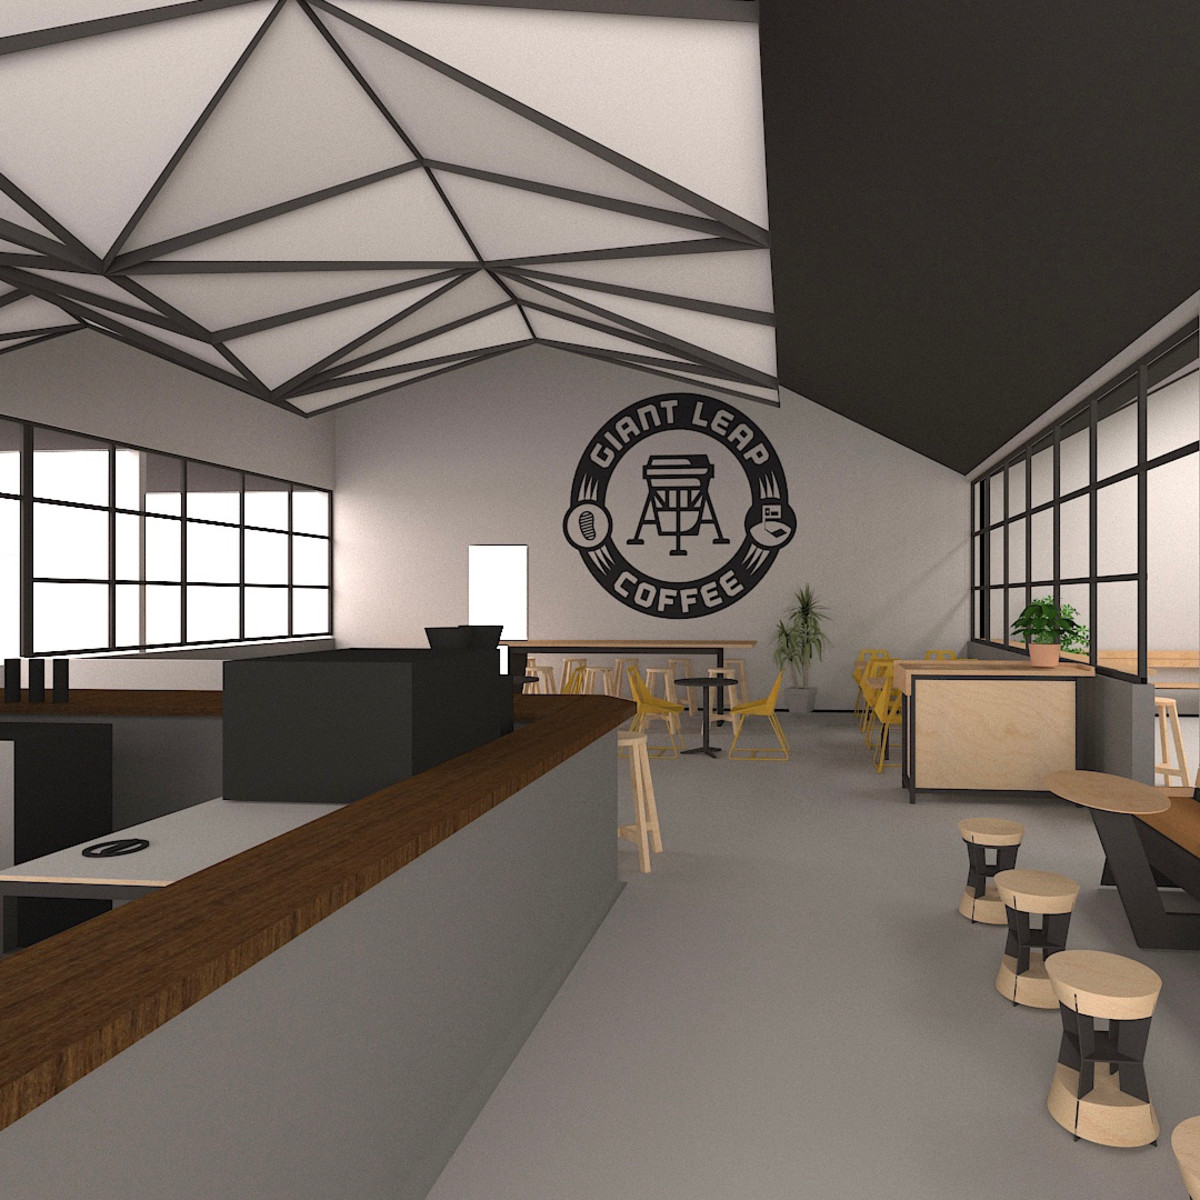 Giant Leap Coffee East End rendering